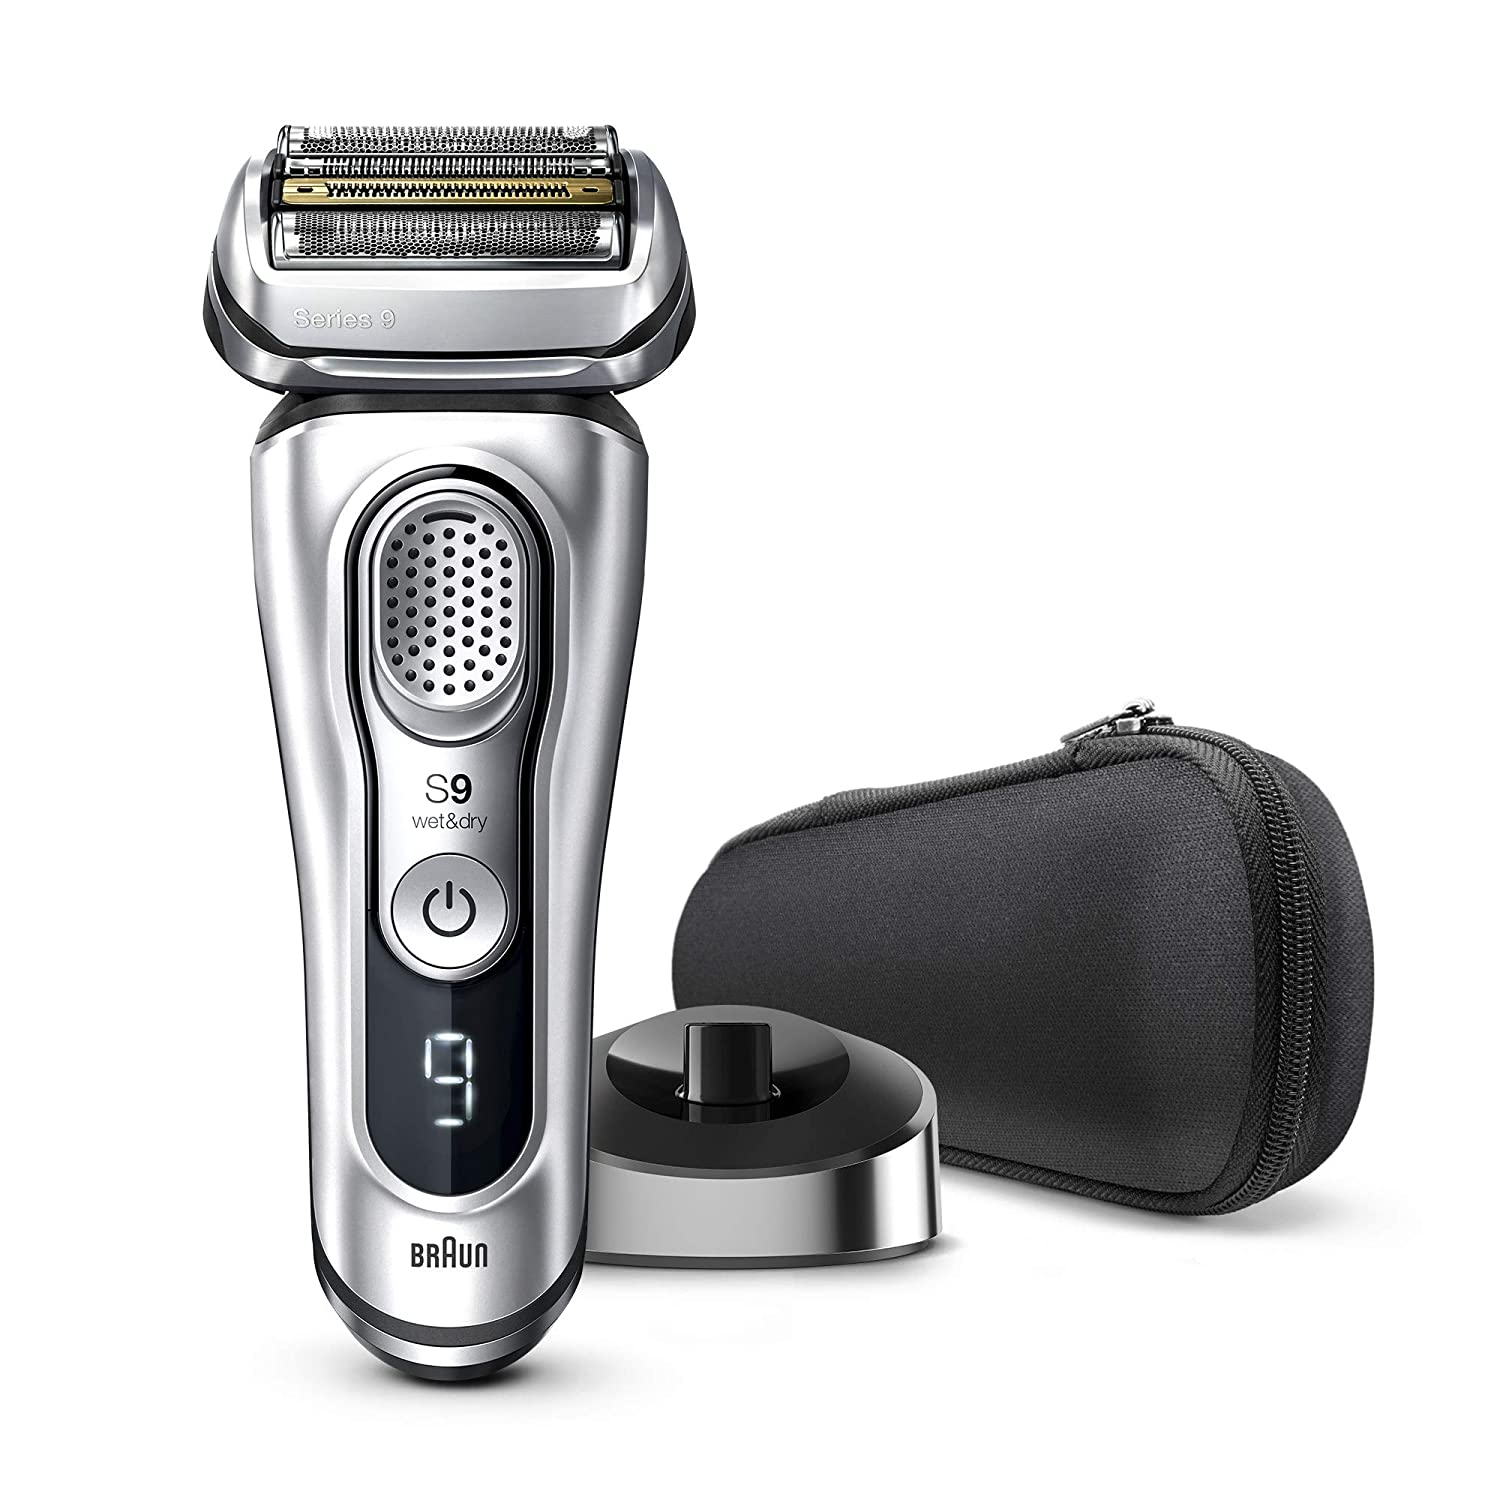 Braun Electric Razor for Men, Series 9 9330s Electric Shaver, Pop-Up Precision Trimmer, Rechargeable, Wet & Dry Foil Shaver with Travel Case, Silver